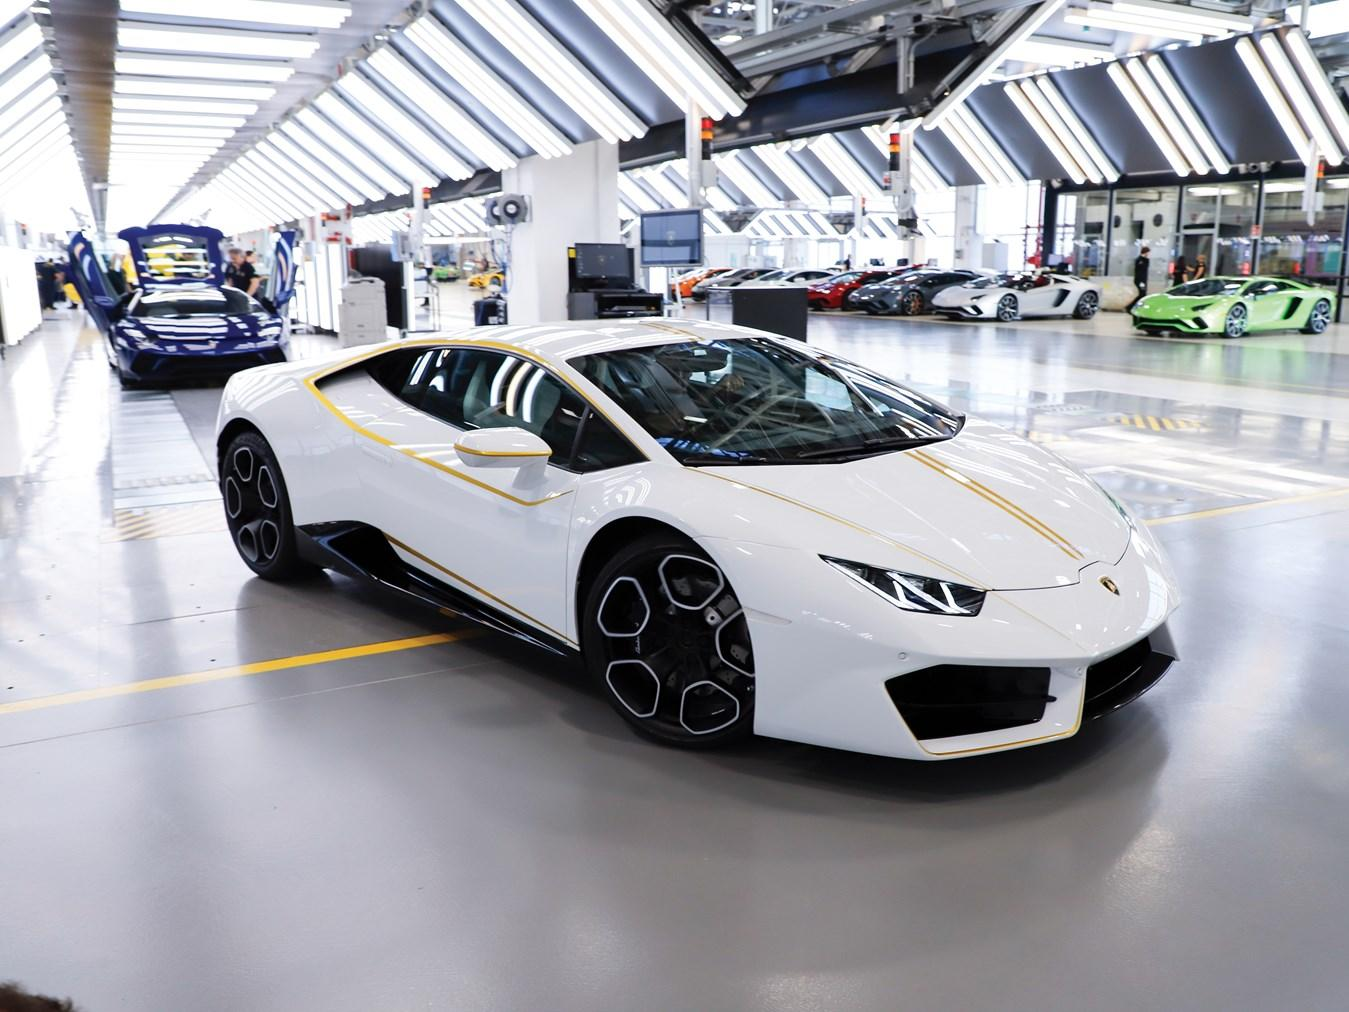 See The Pope S Lamborghini Huracan At Sotheby S Slashgear